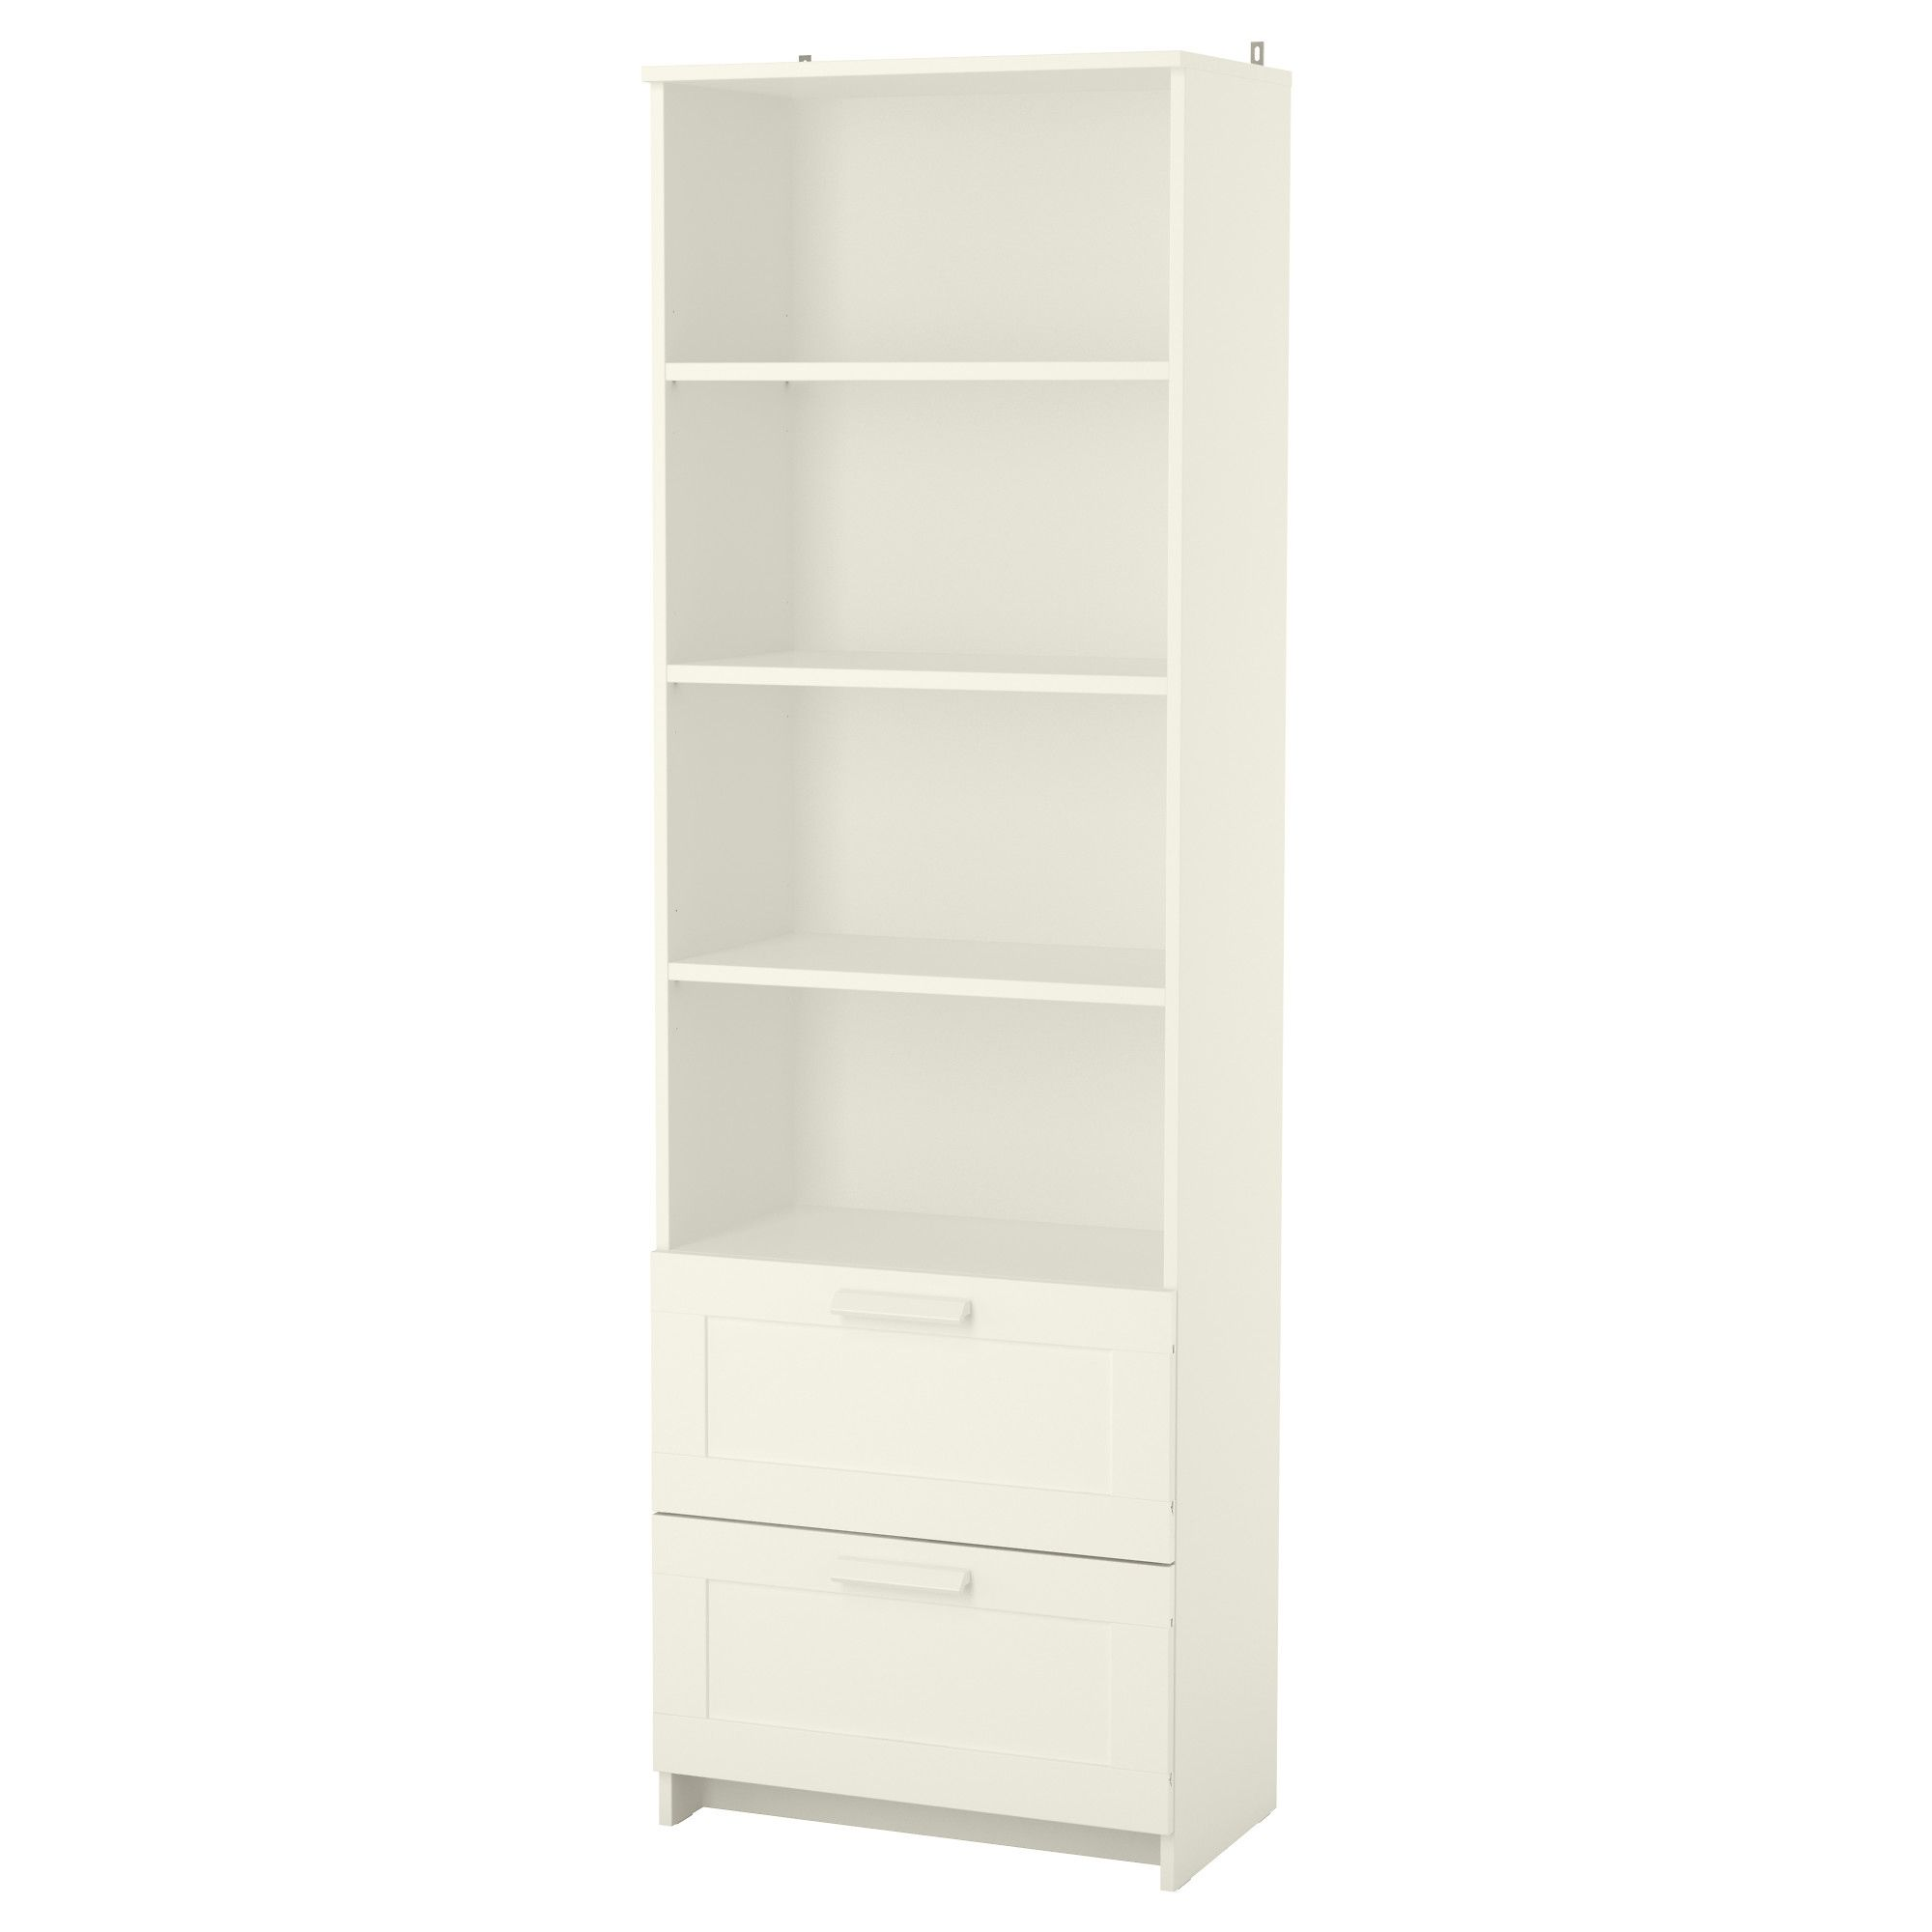 24 Inch Wide White Bookcase Cool Rustic Furniture Check More At Http Fiveinchfloppy Com 24 Inch Wide White Bookcase Ikea Bookcase White Bookcase Bookcase